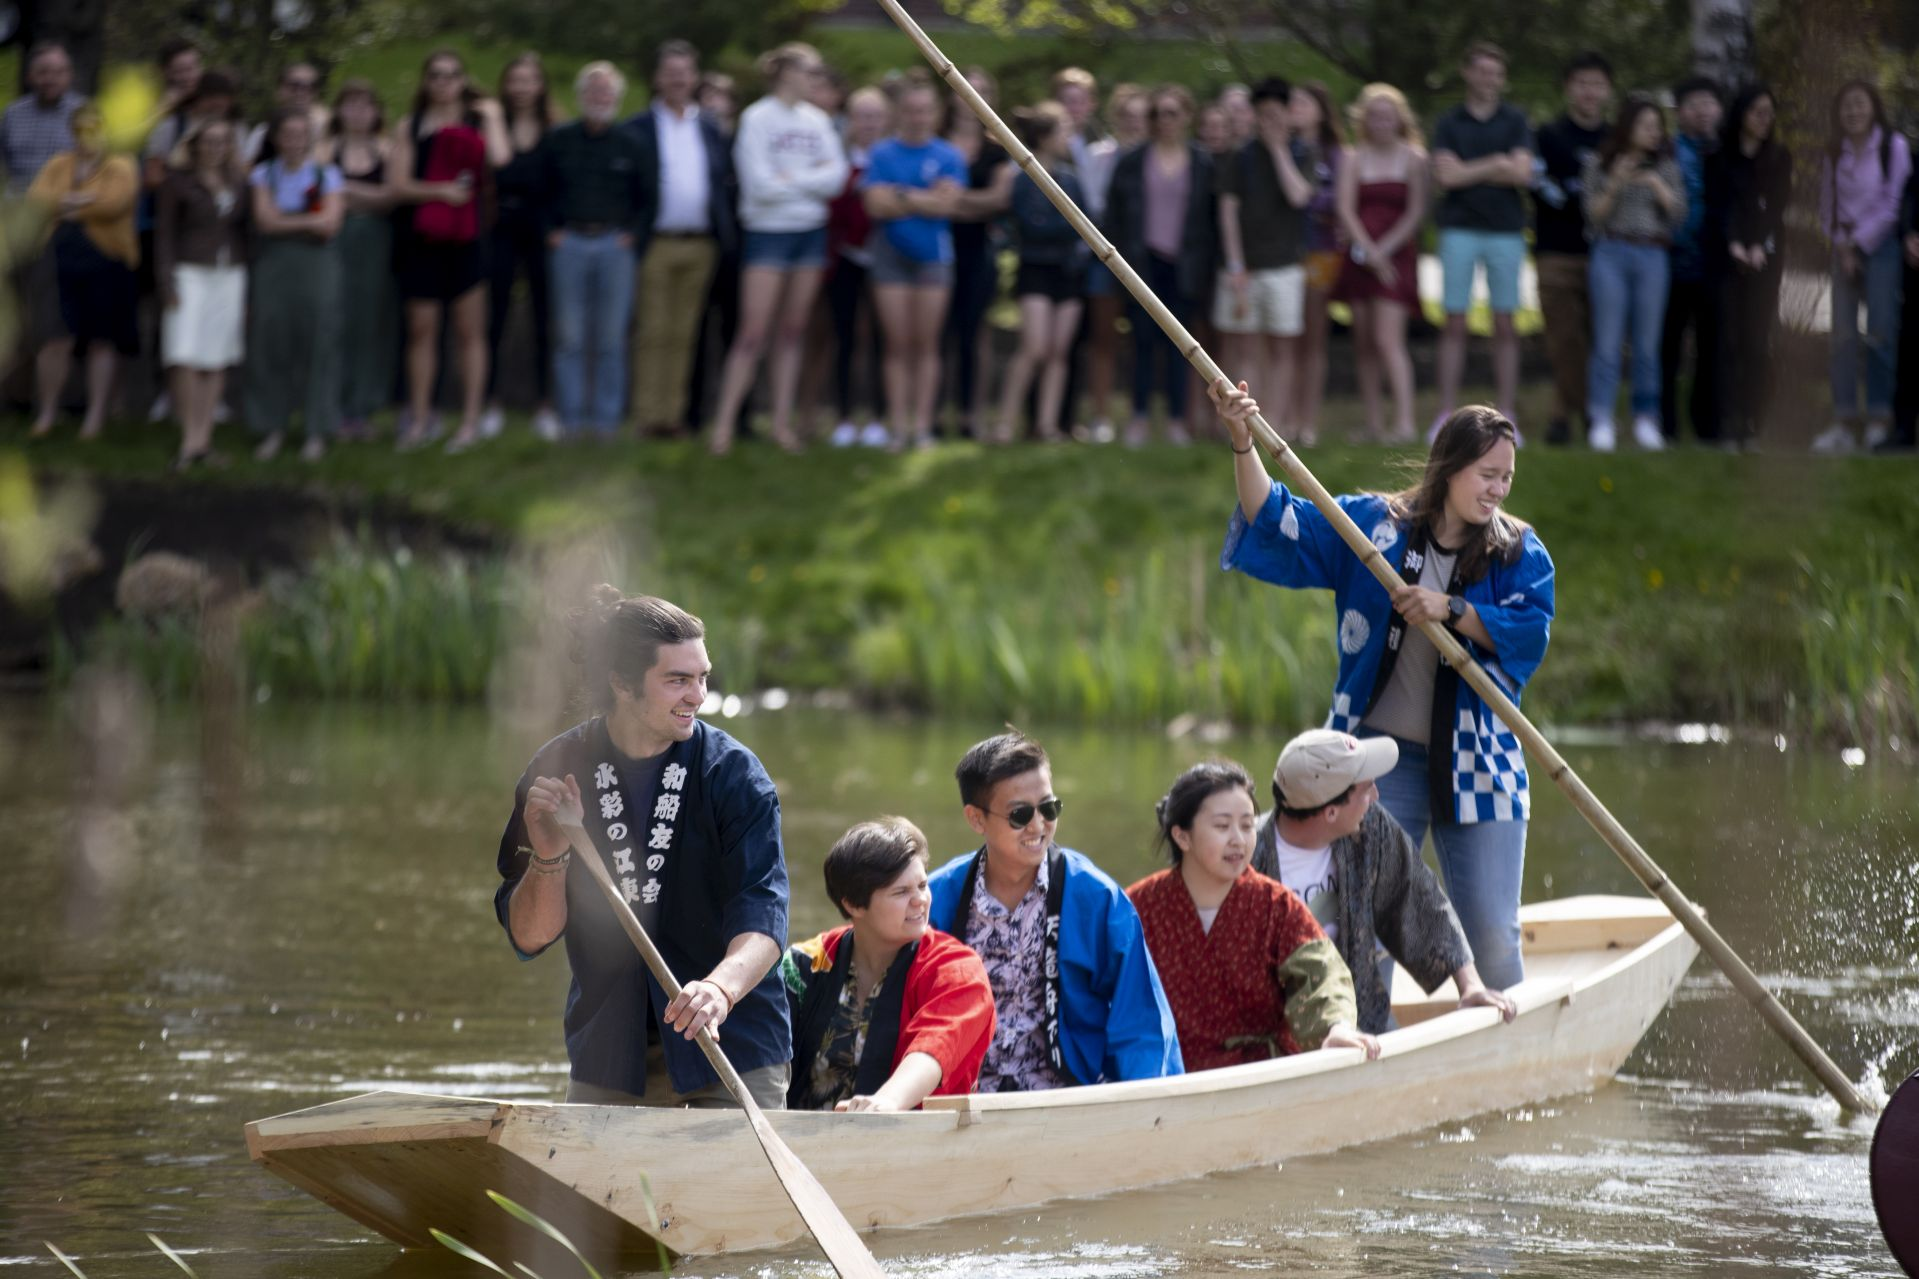 Students turn their boat in front of the crowd gathered on the shore of Lake Andrews. (Phylis Graber Jensen/Bates College)